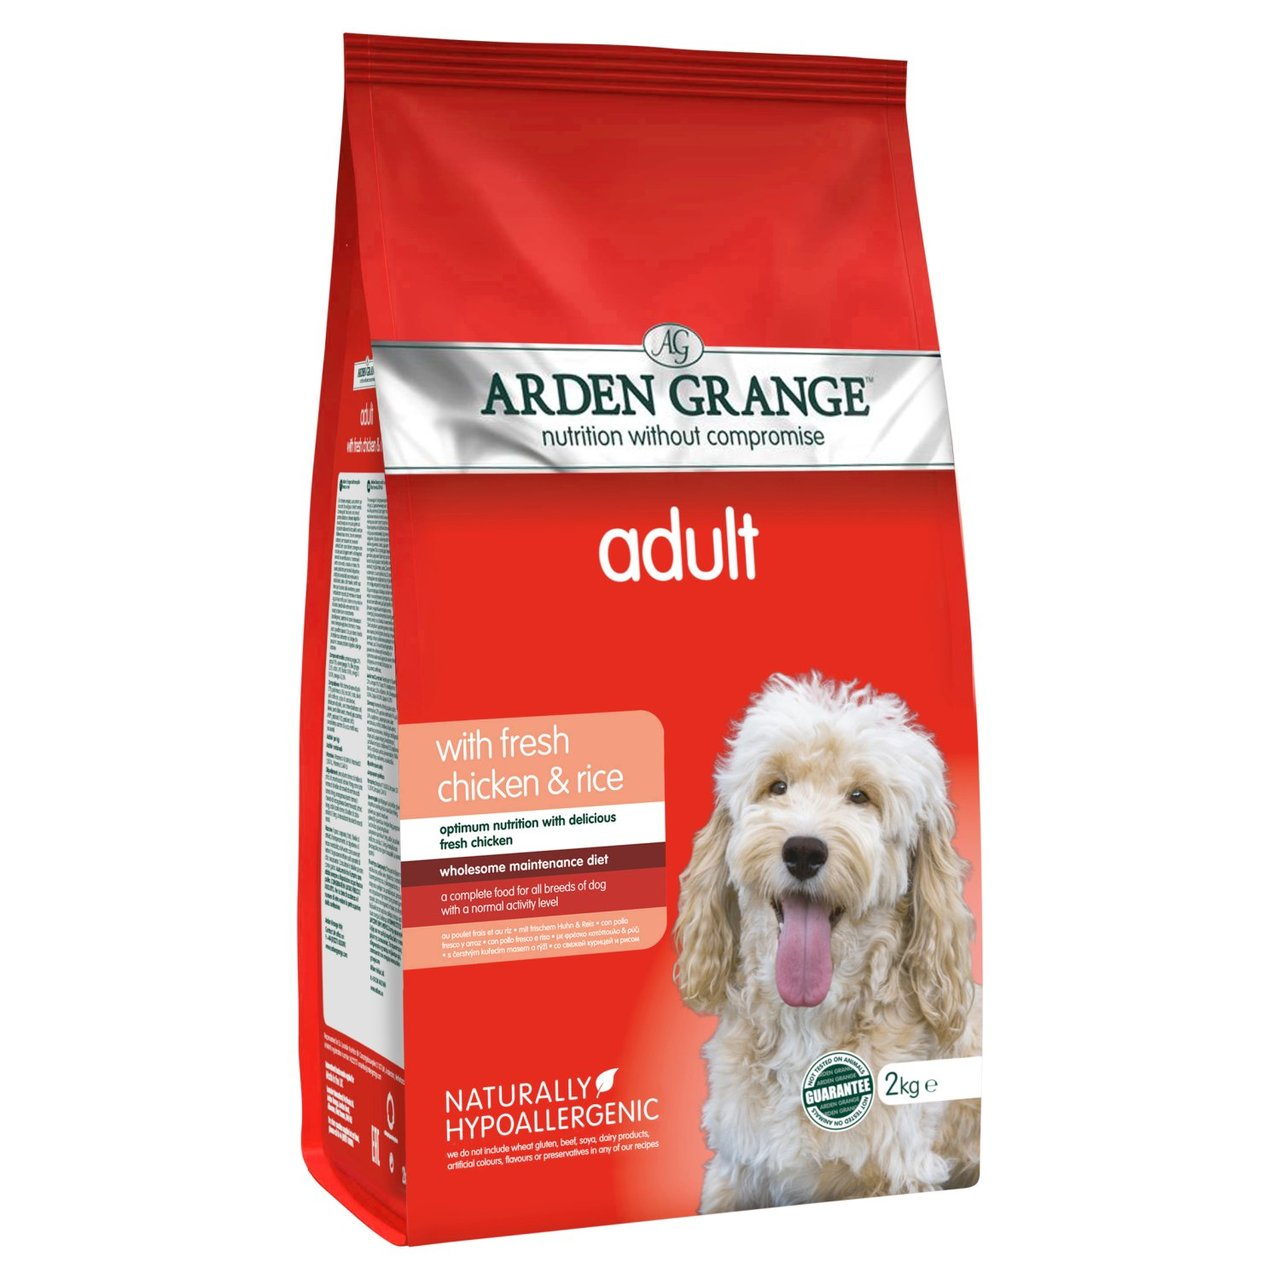 An image of Arden Grange Chicken Adult Dog Food